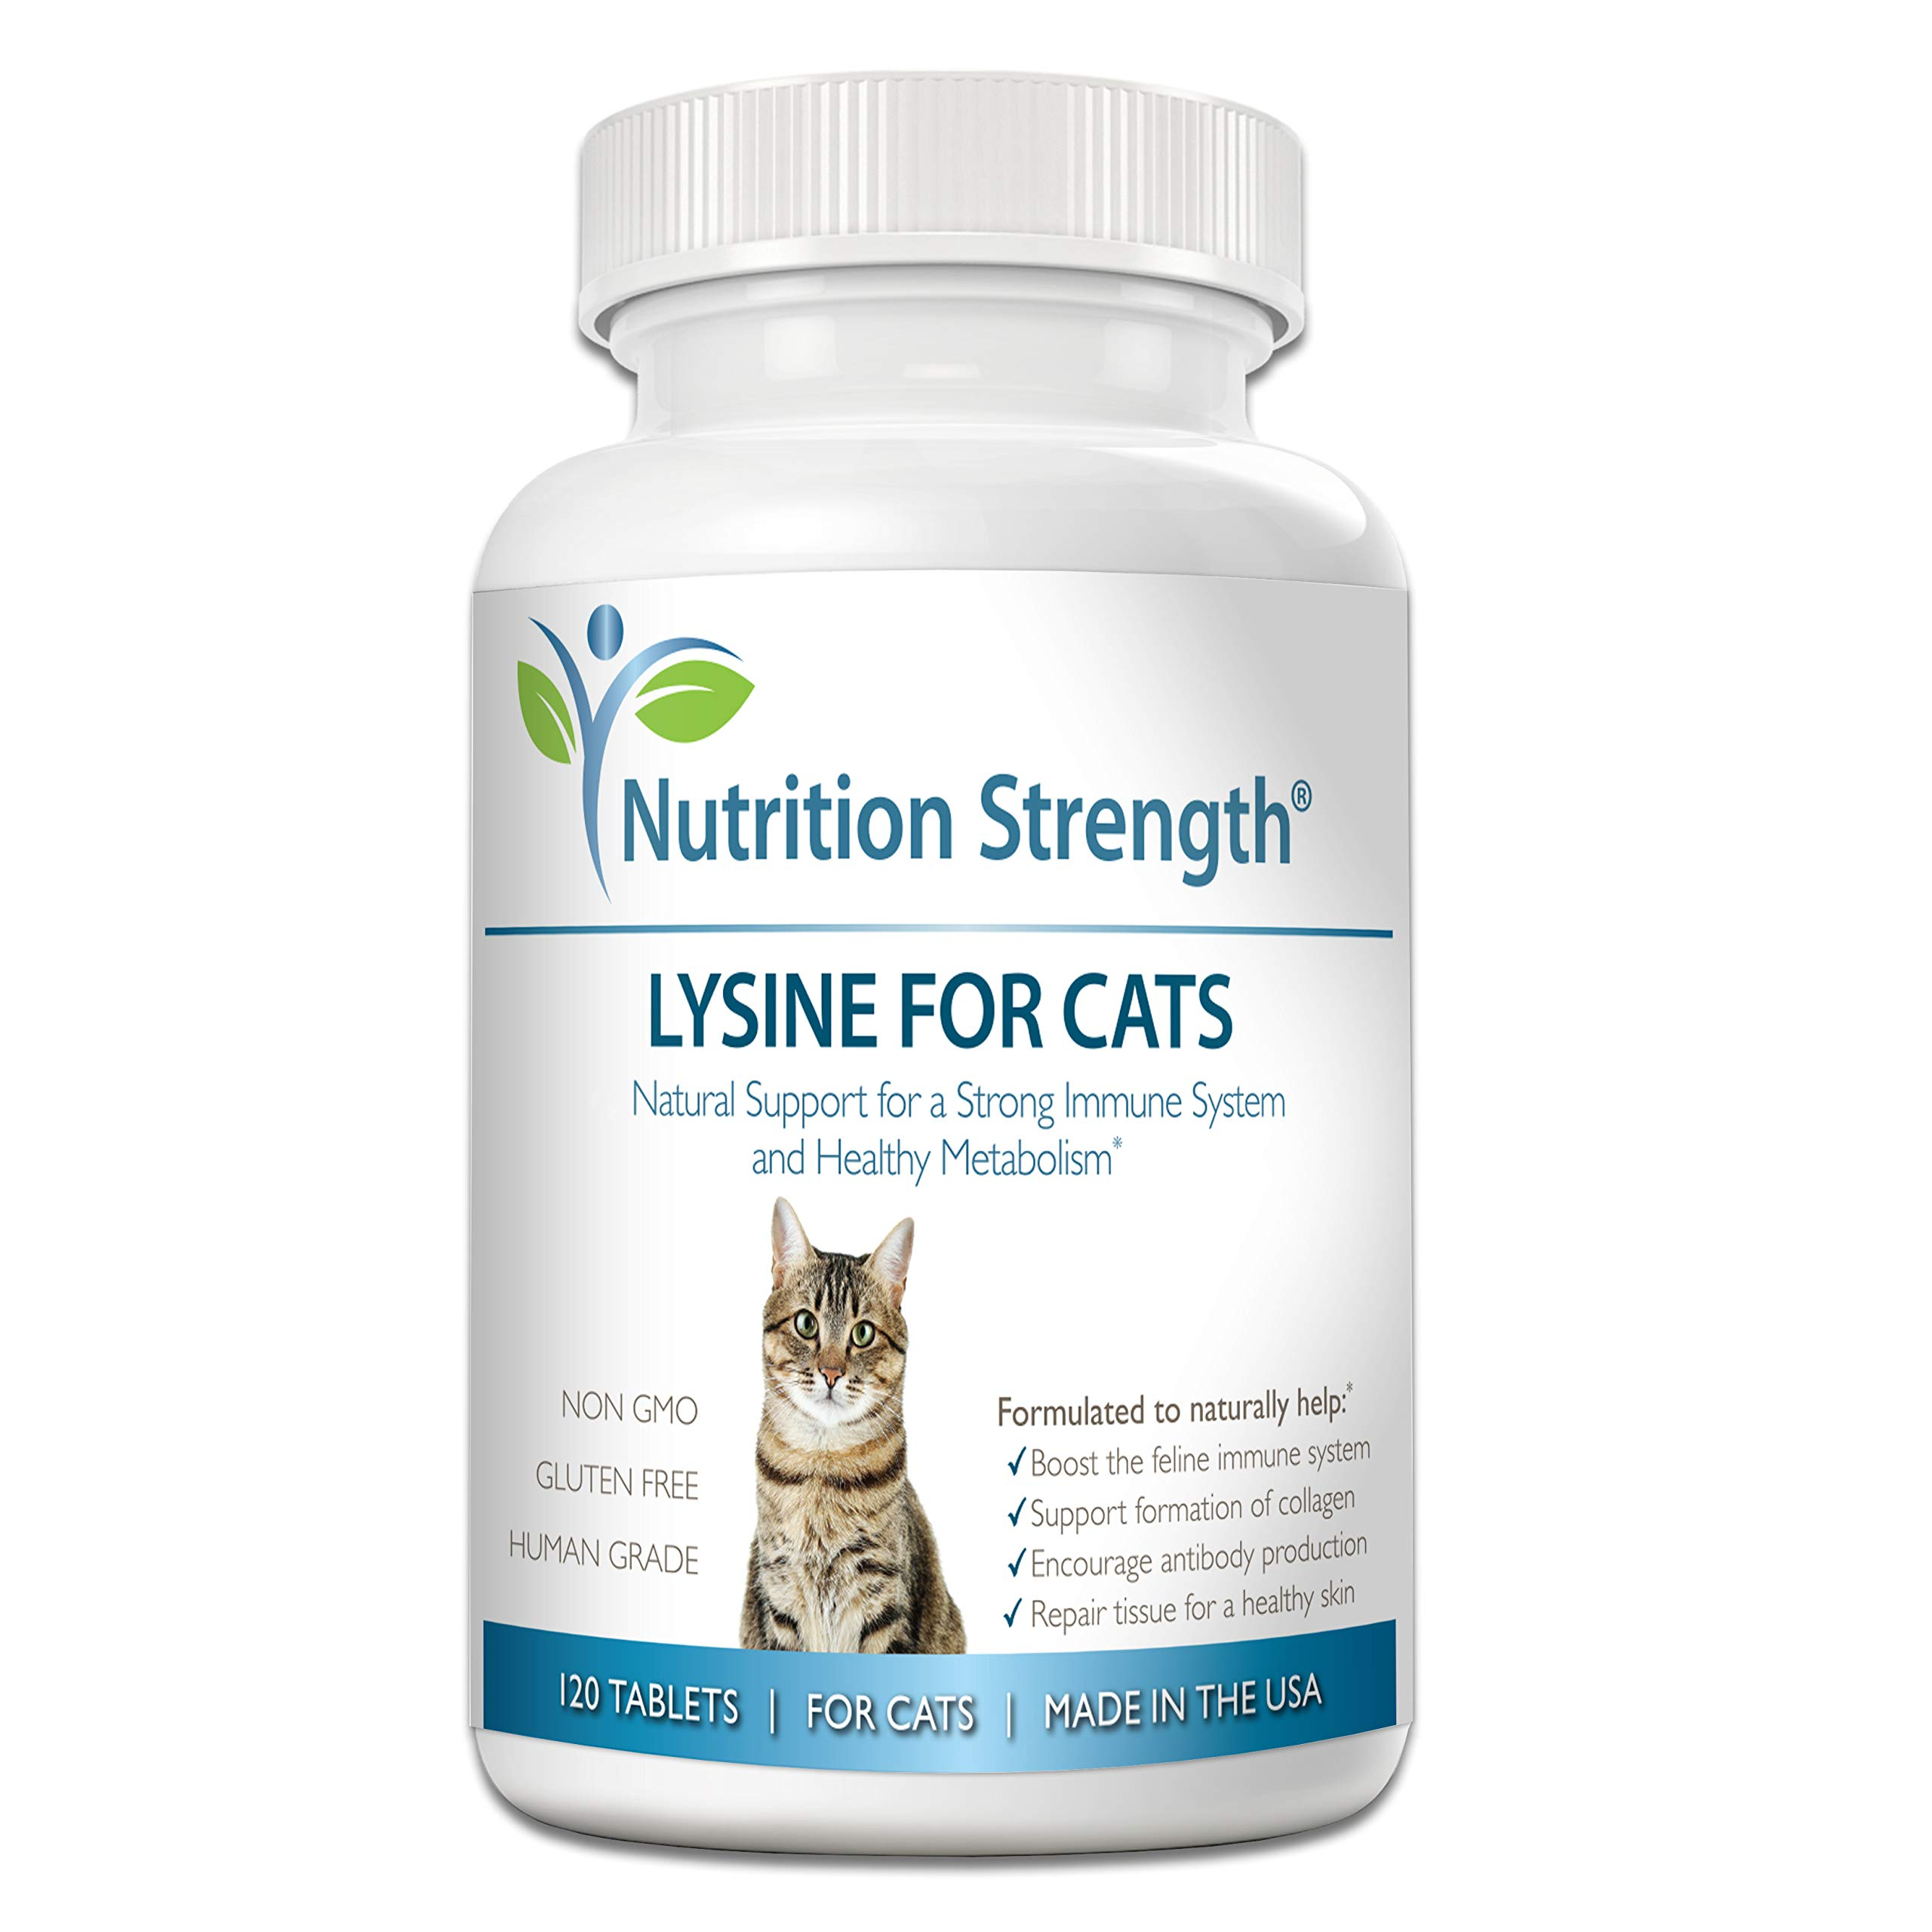 Nutrition Strength Lysine for Cats, Help Support The Feline Immune System, Promote Respiratory Health, Support Collagen Formation, Encourage Antibody Production, Plus CoQ10, 120 Chewable Tablets by Nutrition Strength